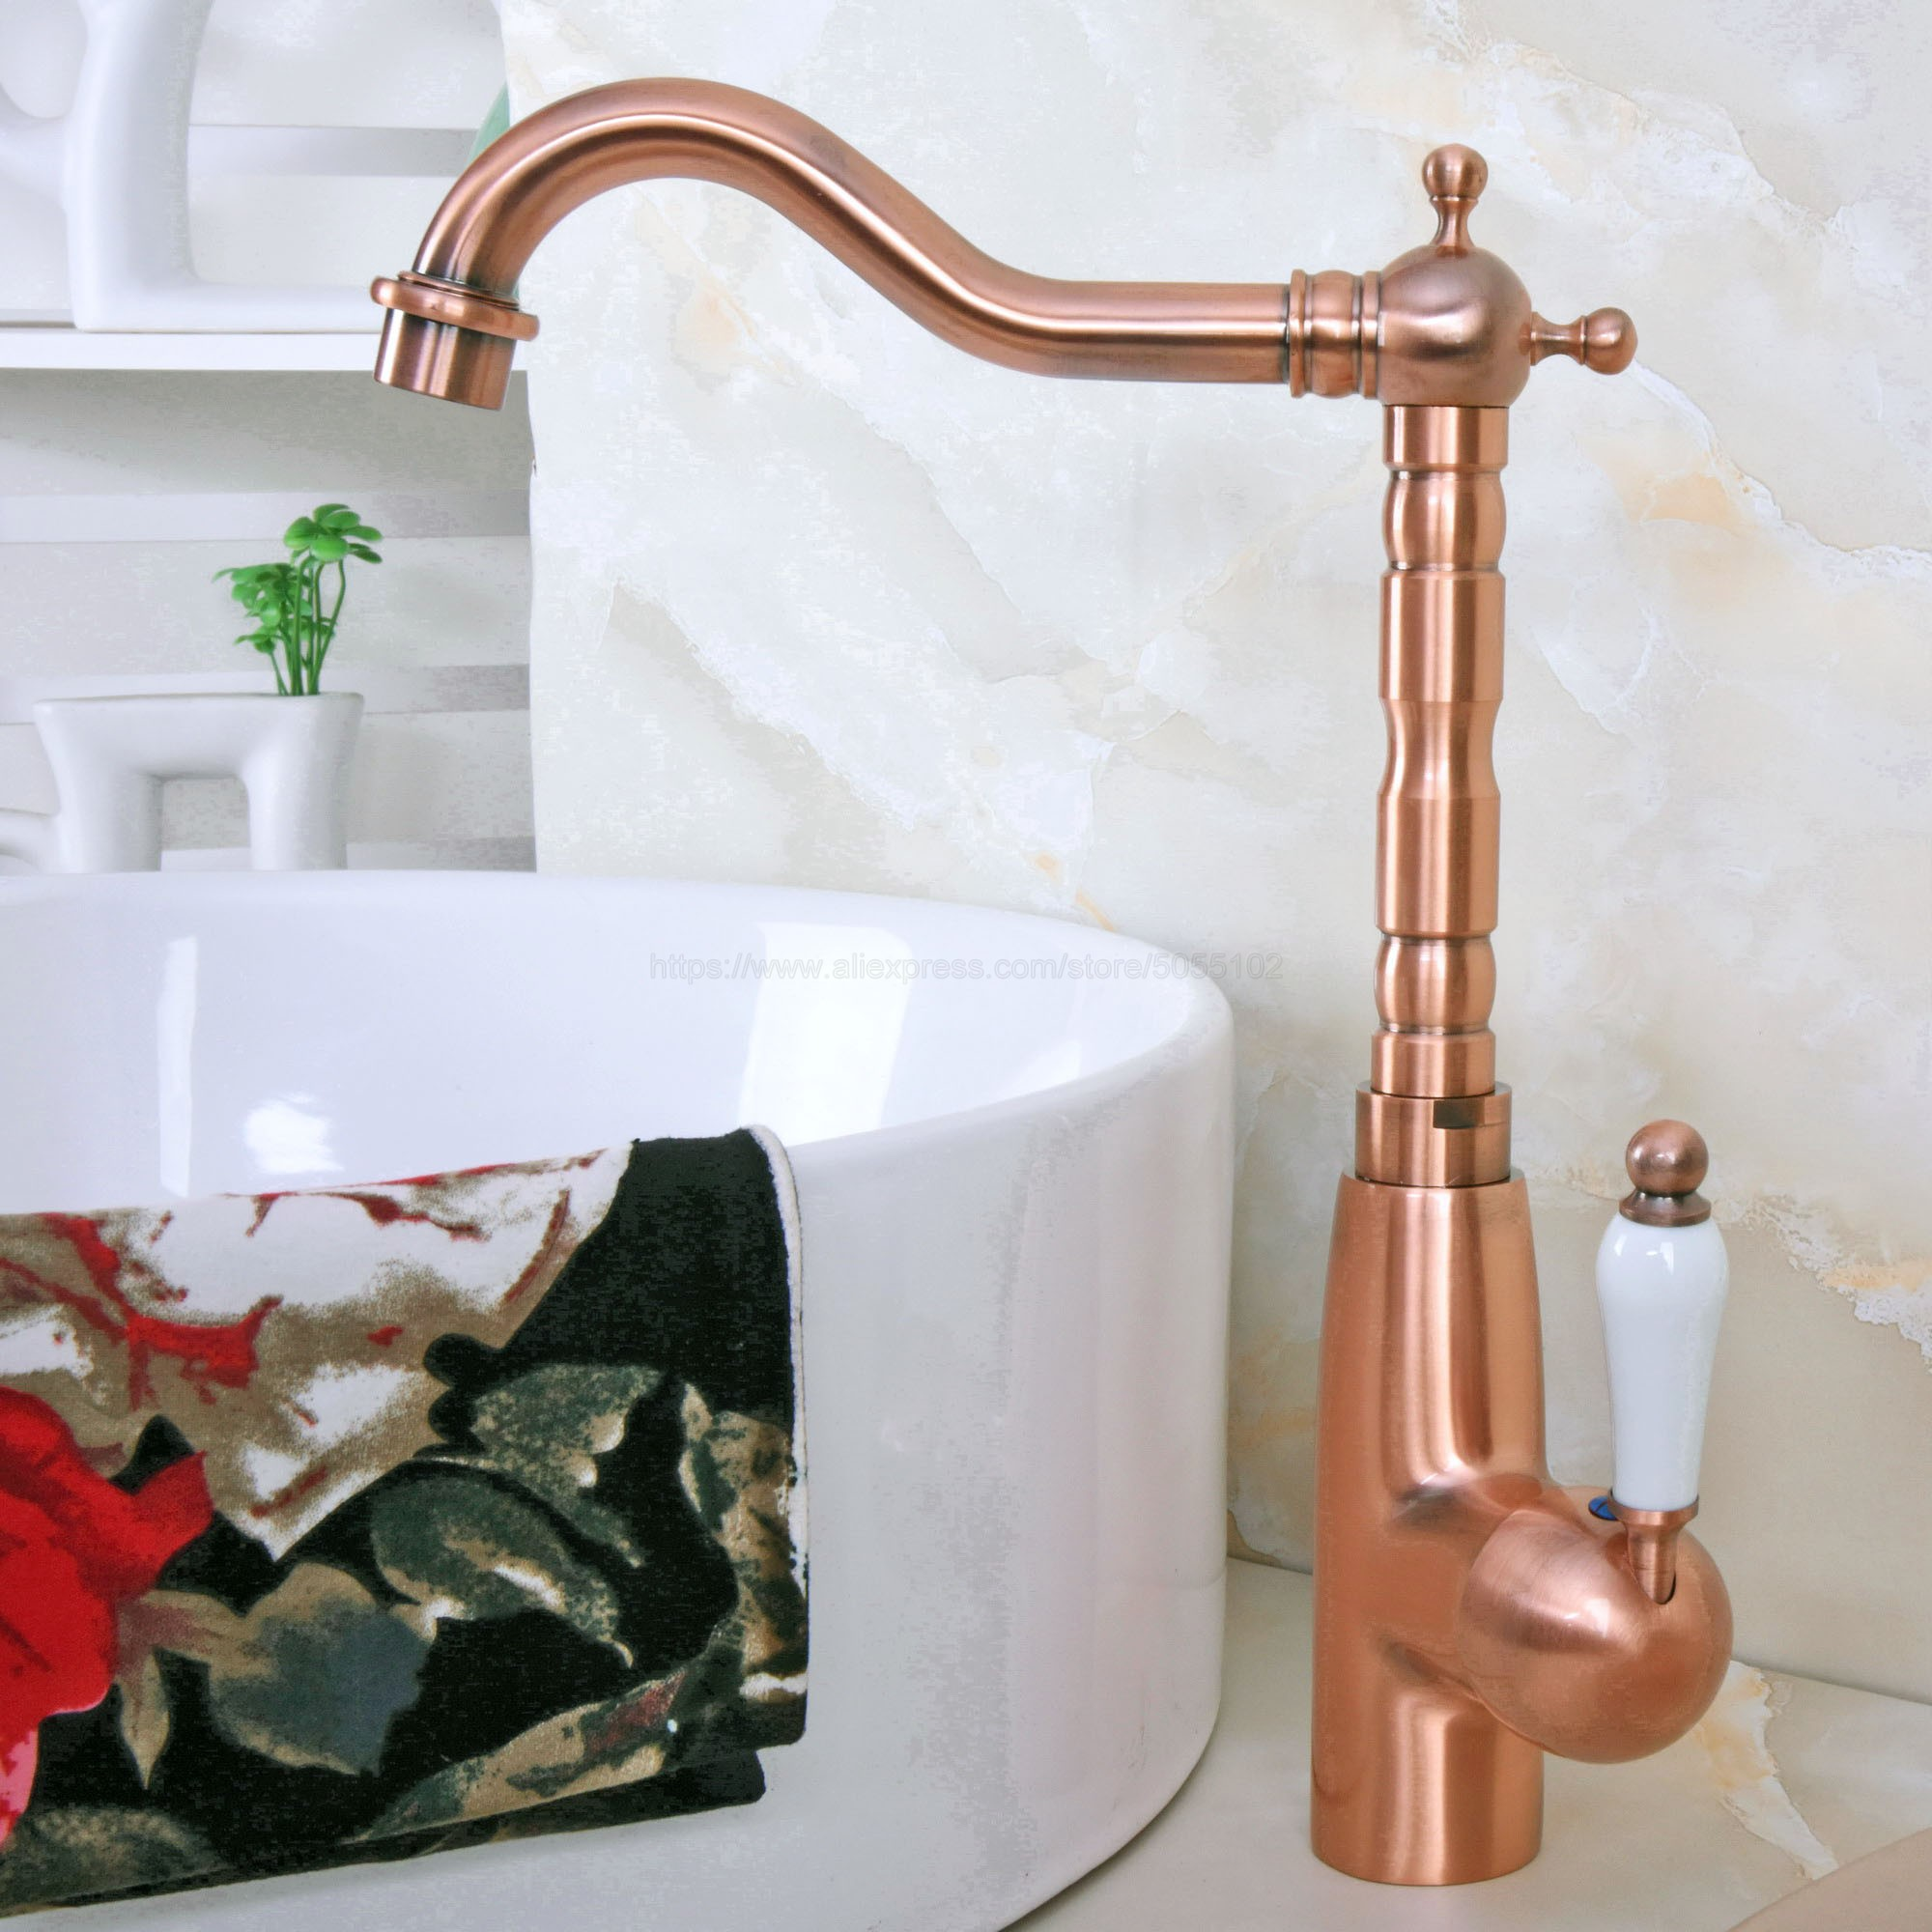 Antique Red Copper Deck Mounted Bathroom Basin Faucet Hot And Cold Bathroom Sink Mixer Taps Znf637